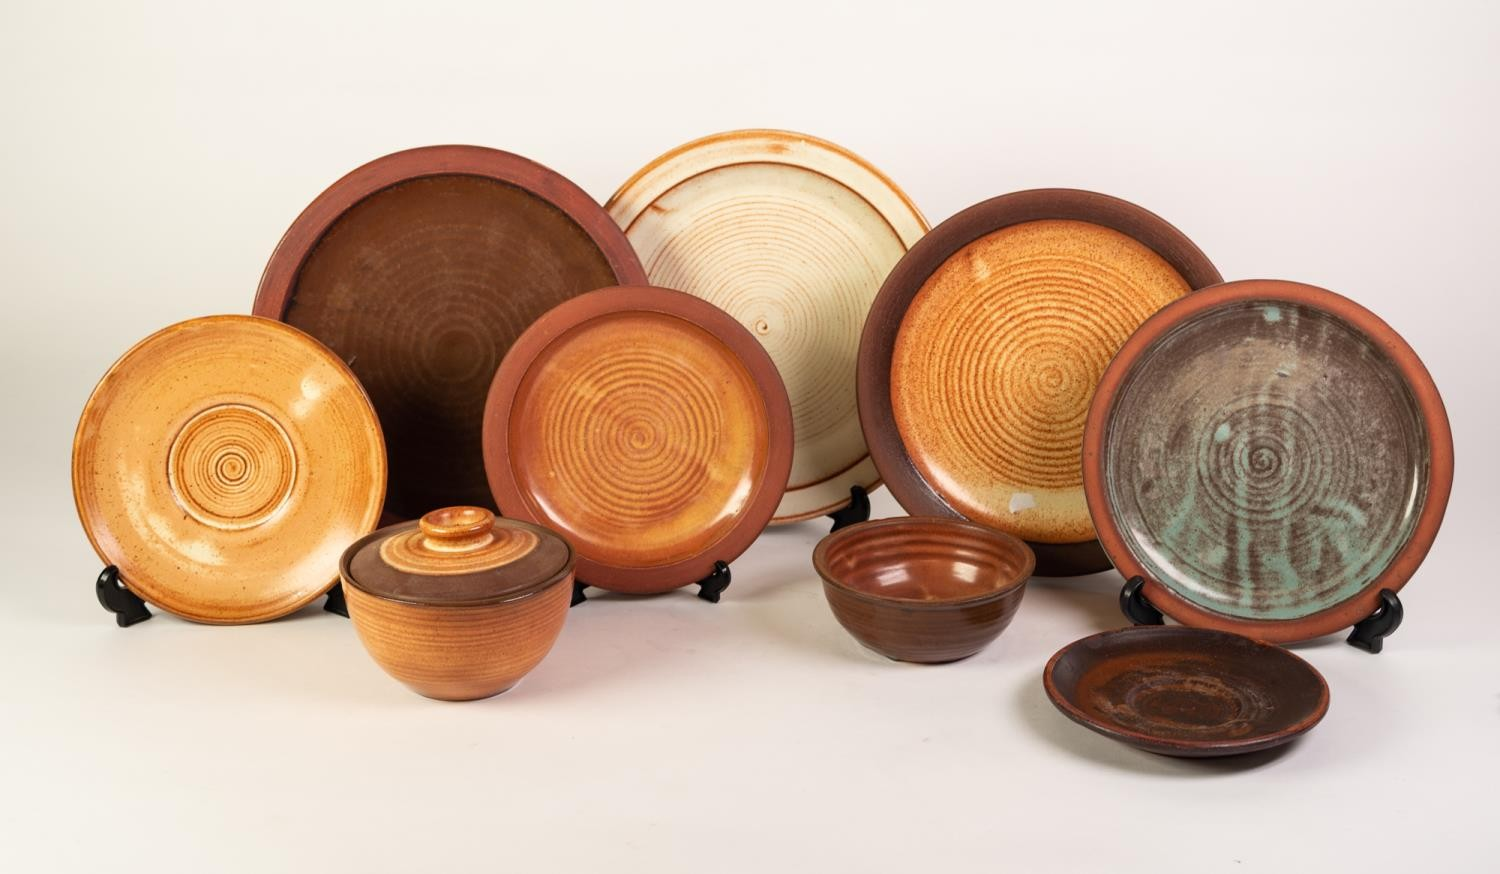 TWENTY ONE DAVID LEACH STYLE POTTERY PLATES IN FOUR SIZES, each with unglazed rims and slightly